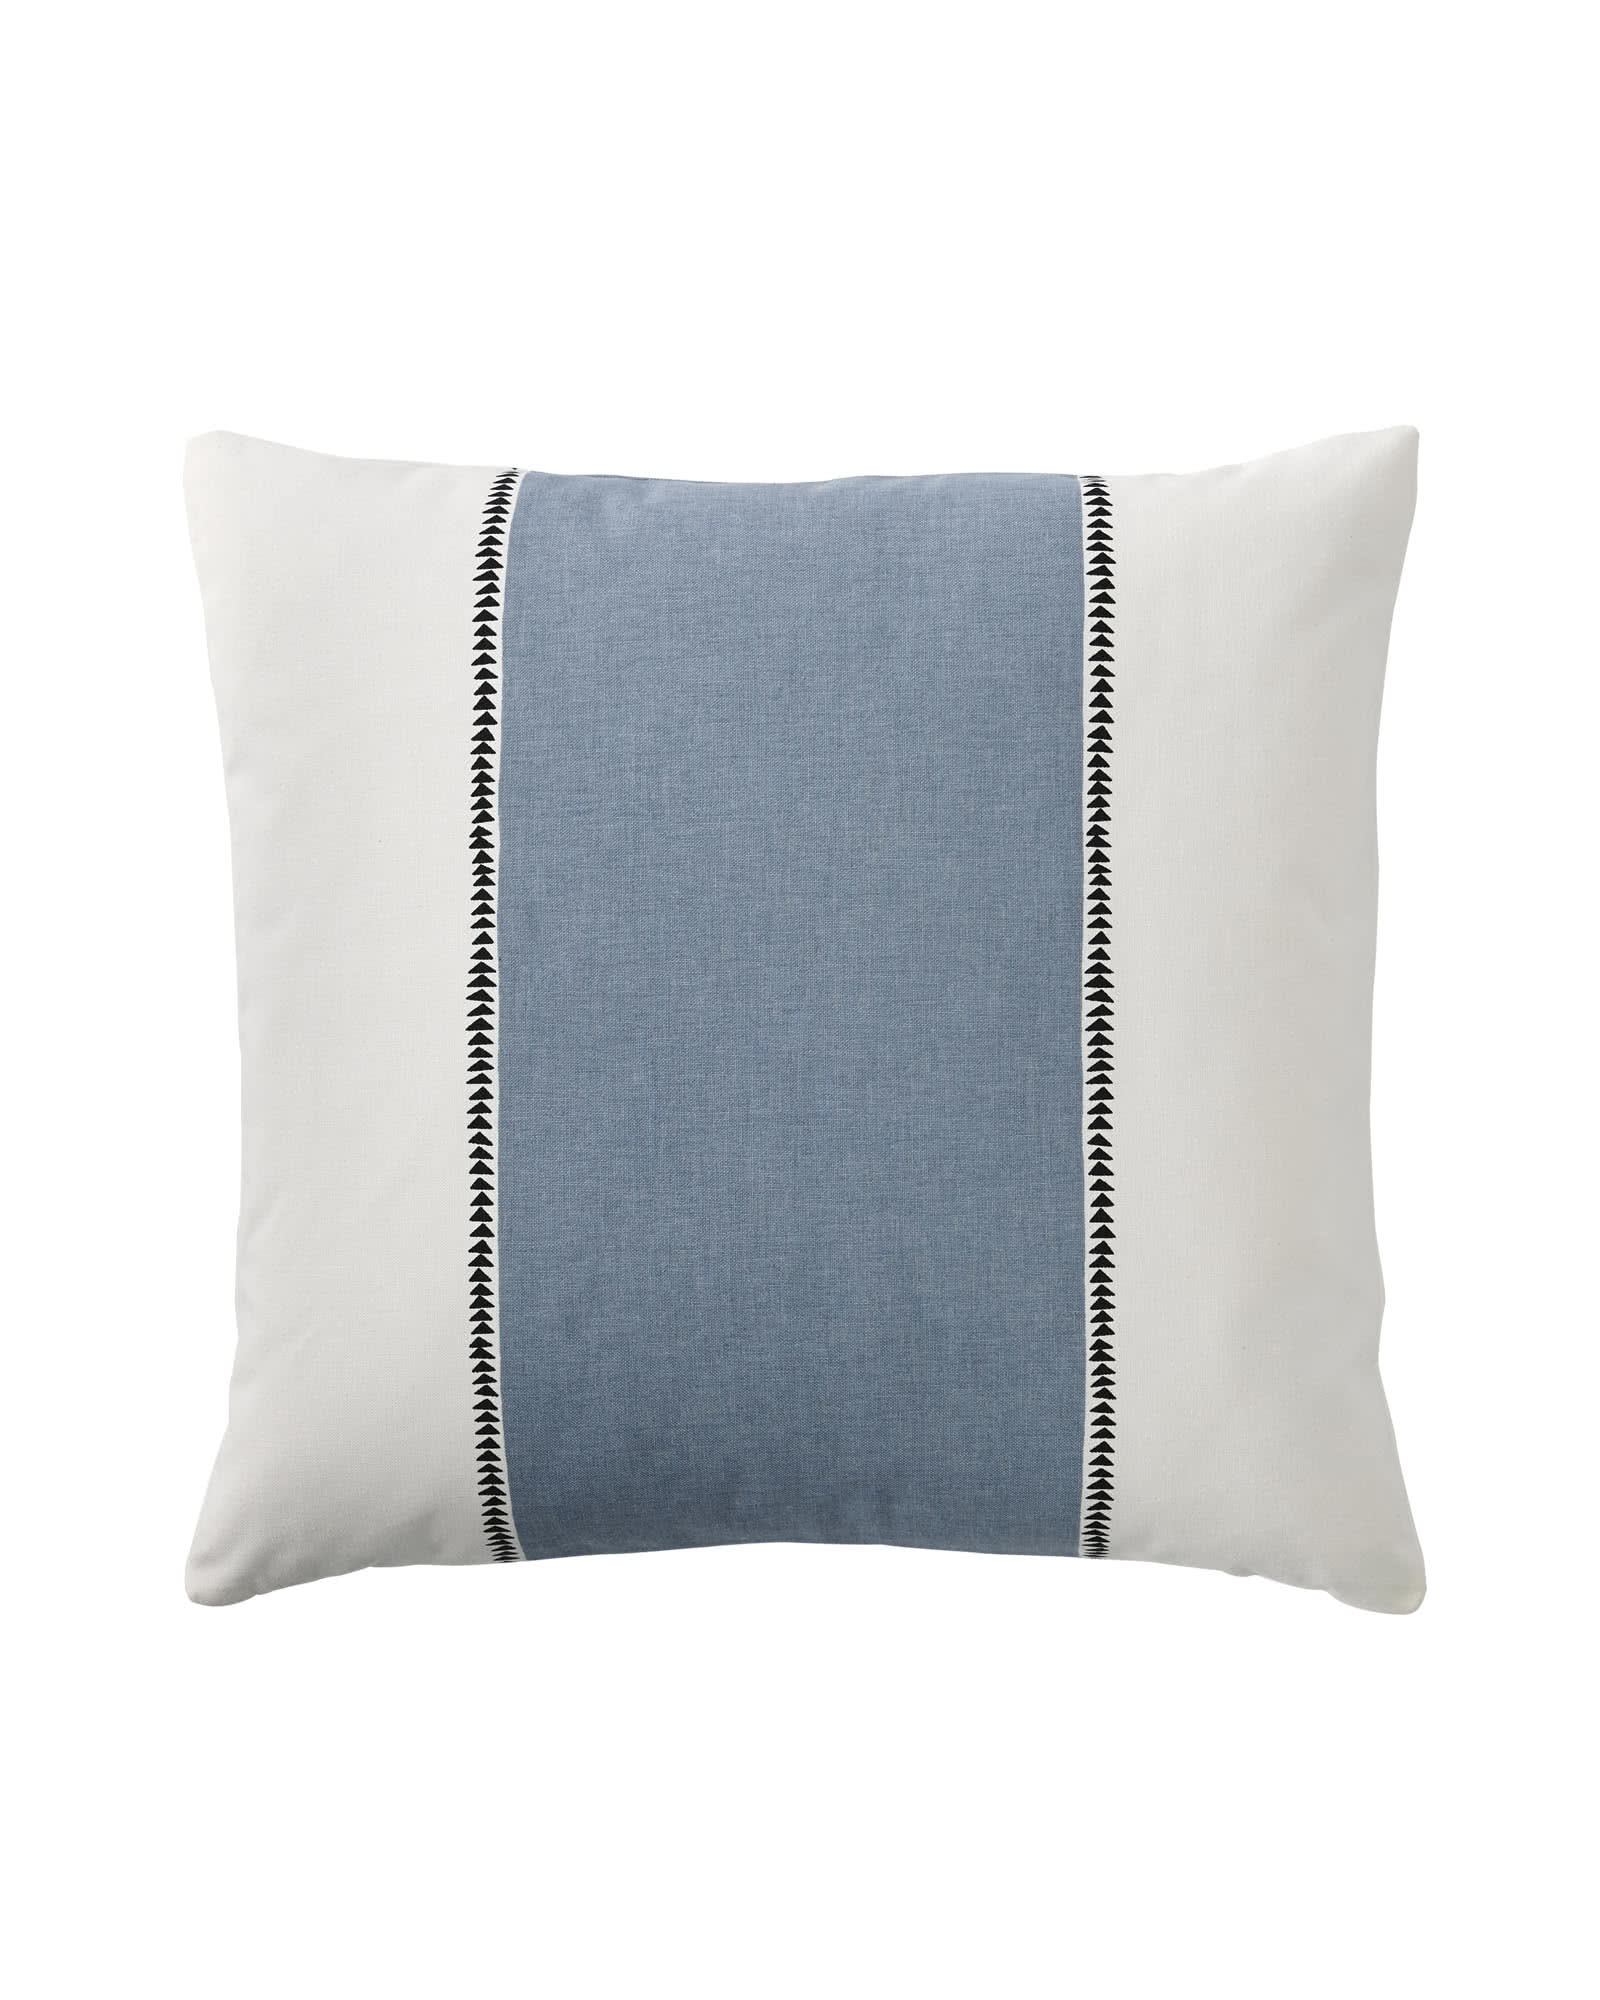 Racing Stripe Pillow Covers, Chambray